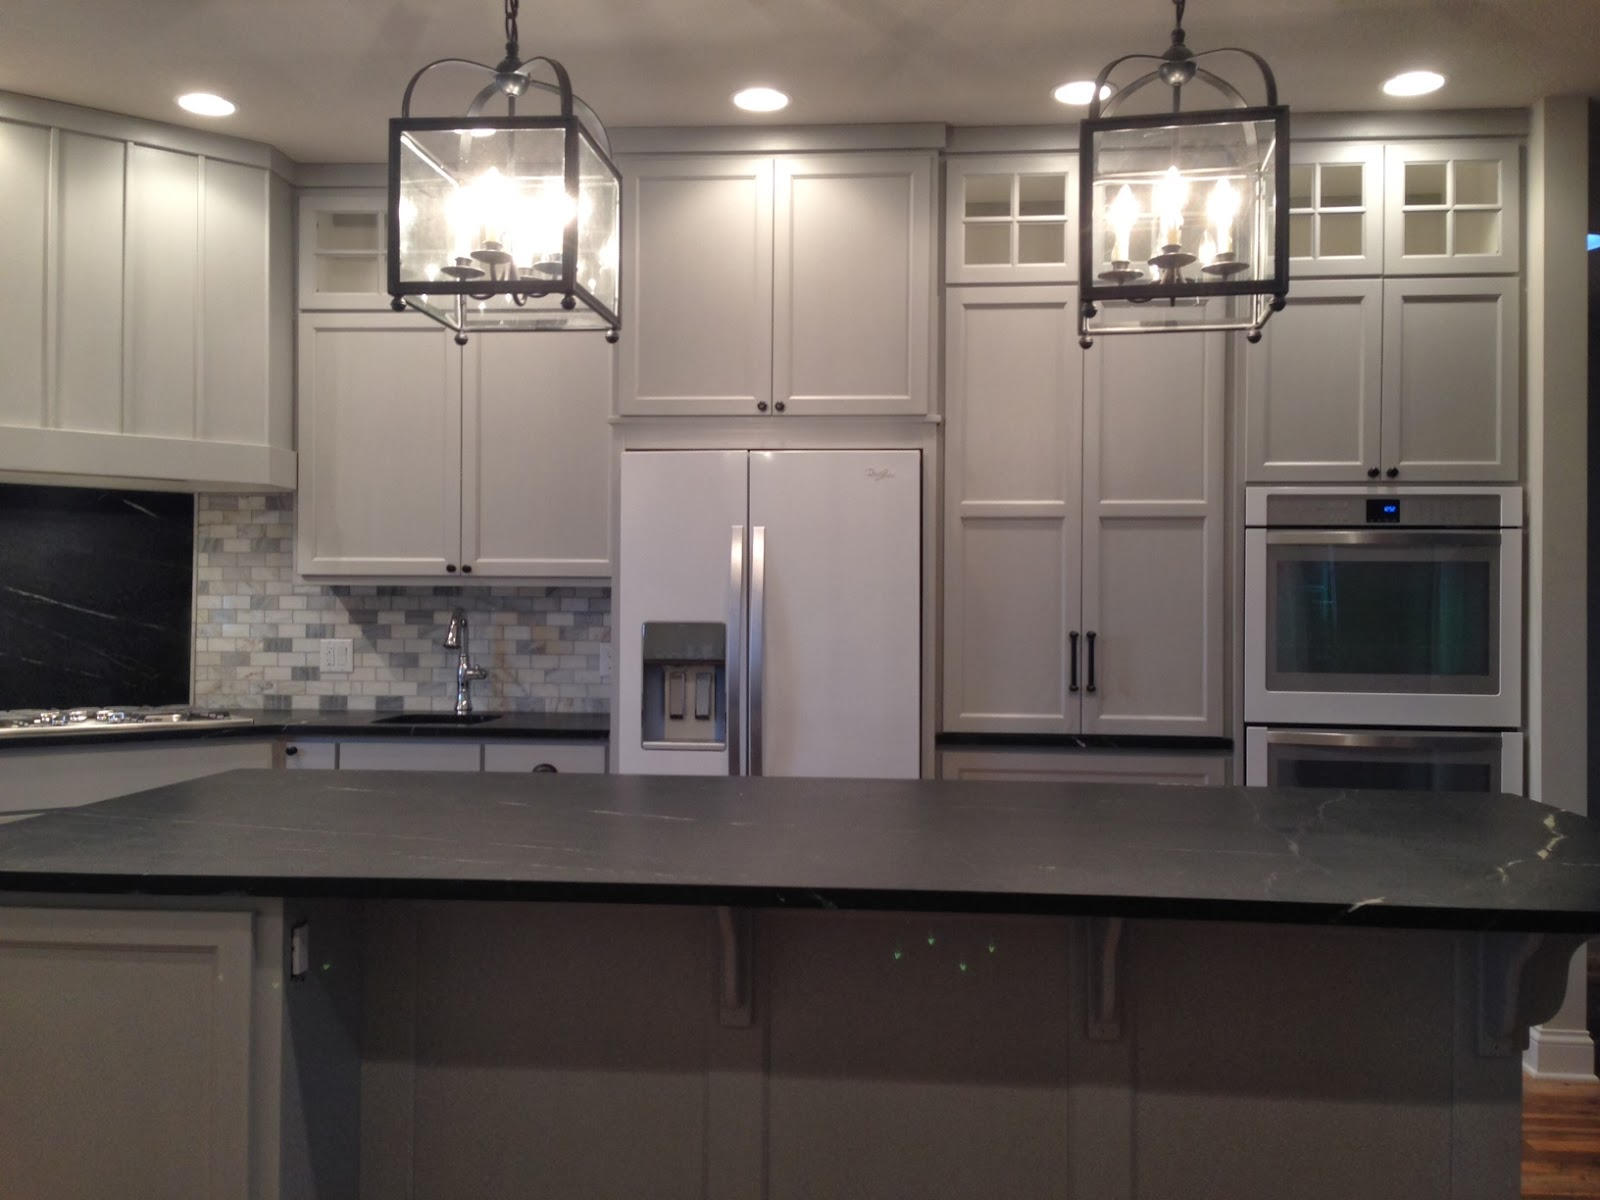 Paddywac's: A NEW KITCHEN IN PARIS GREY